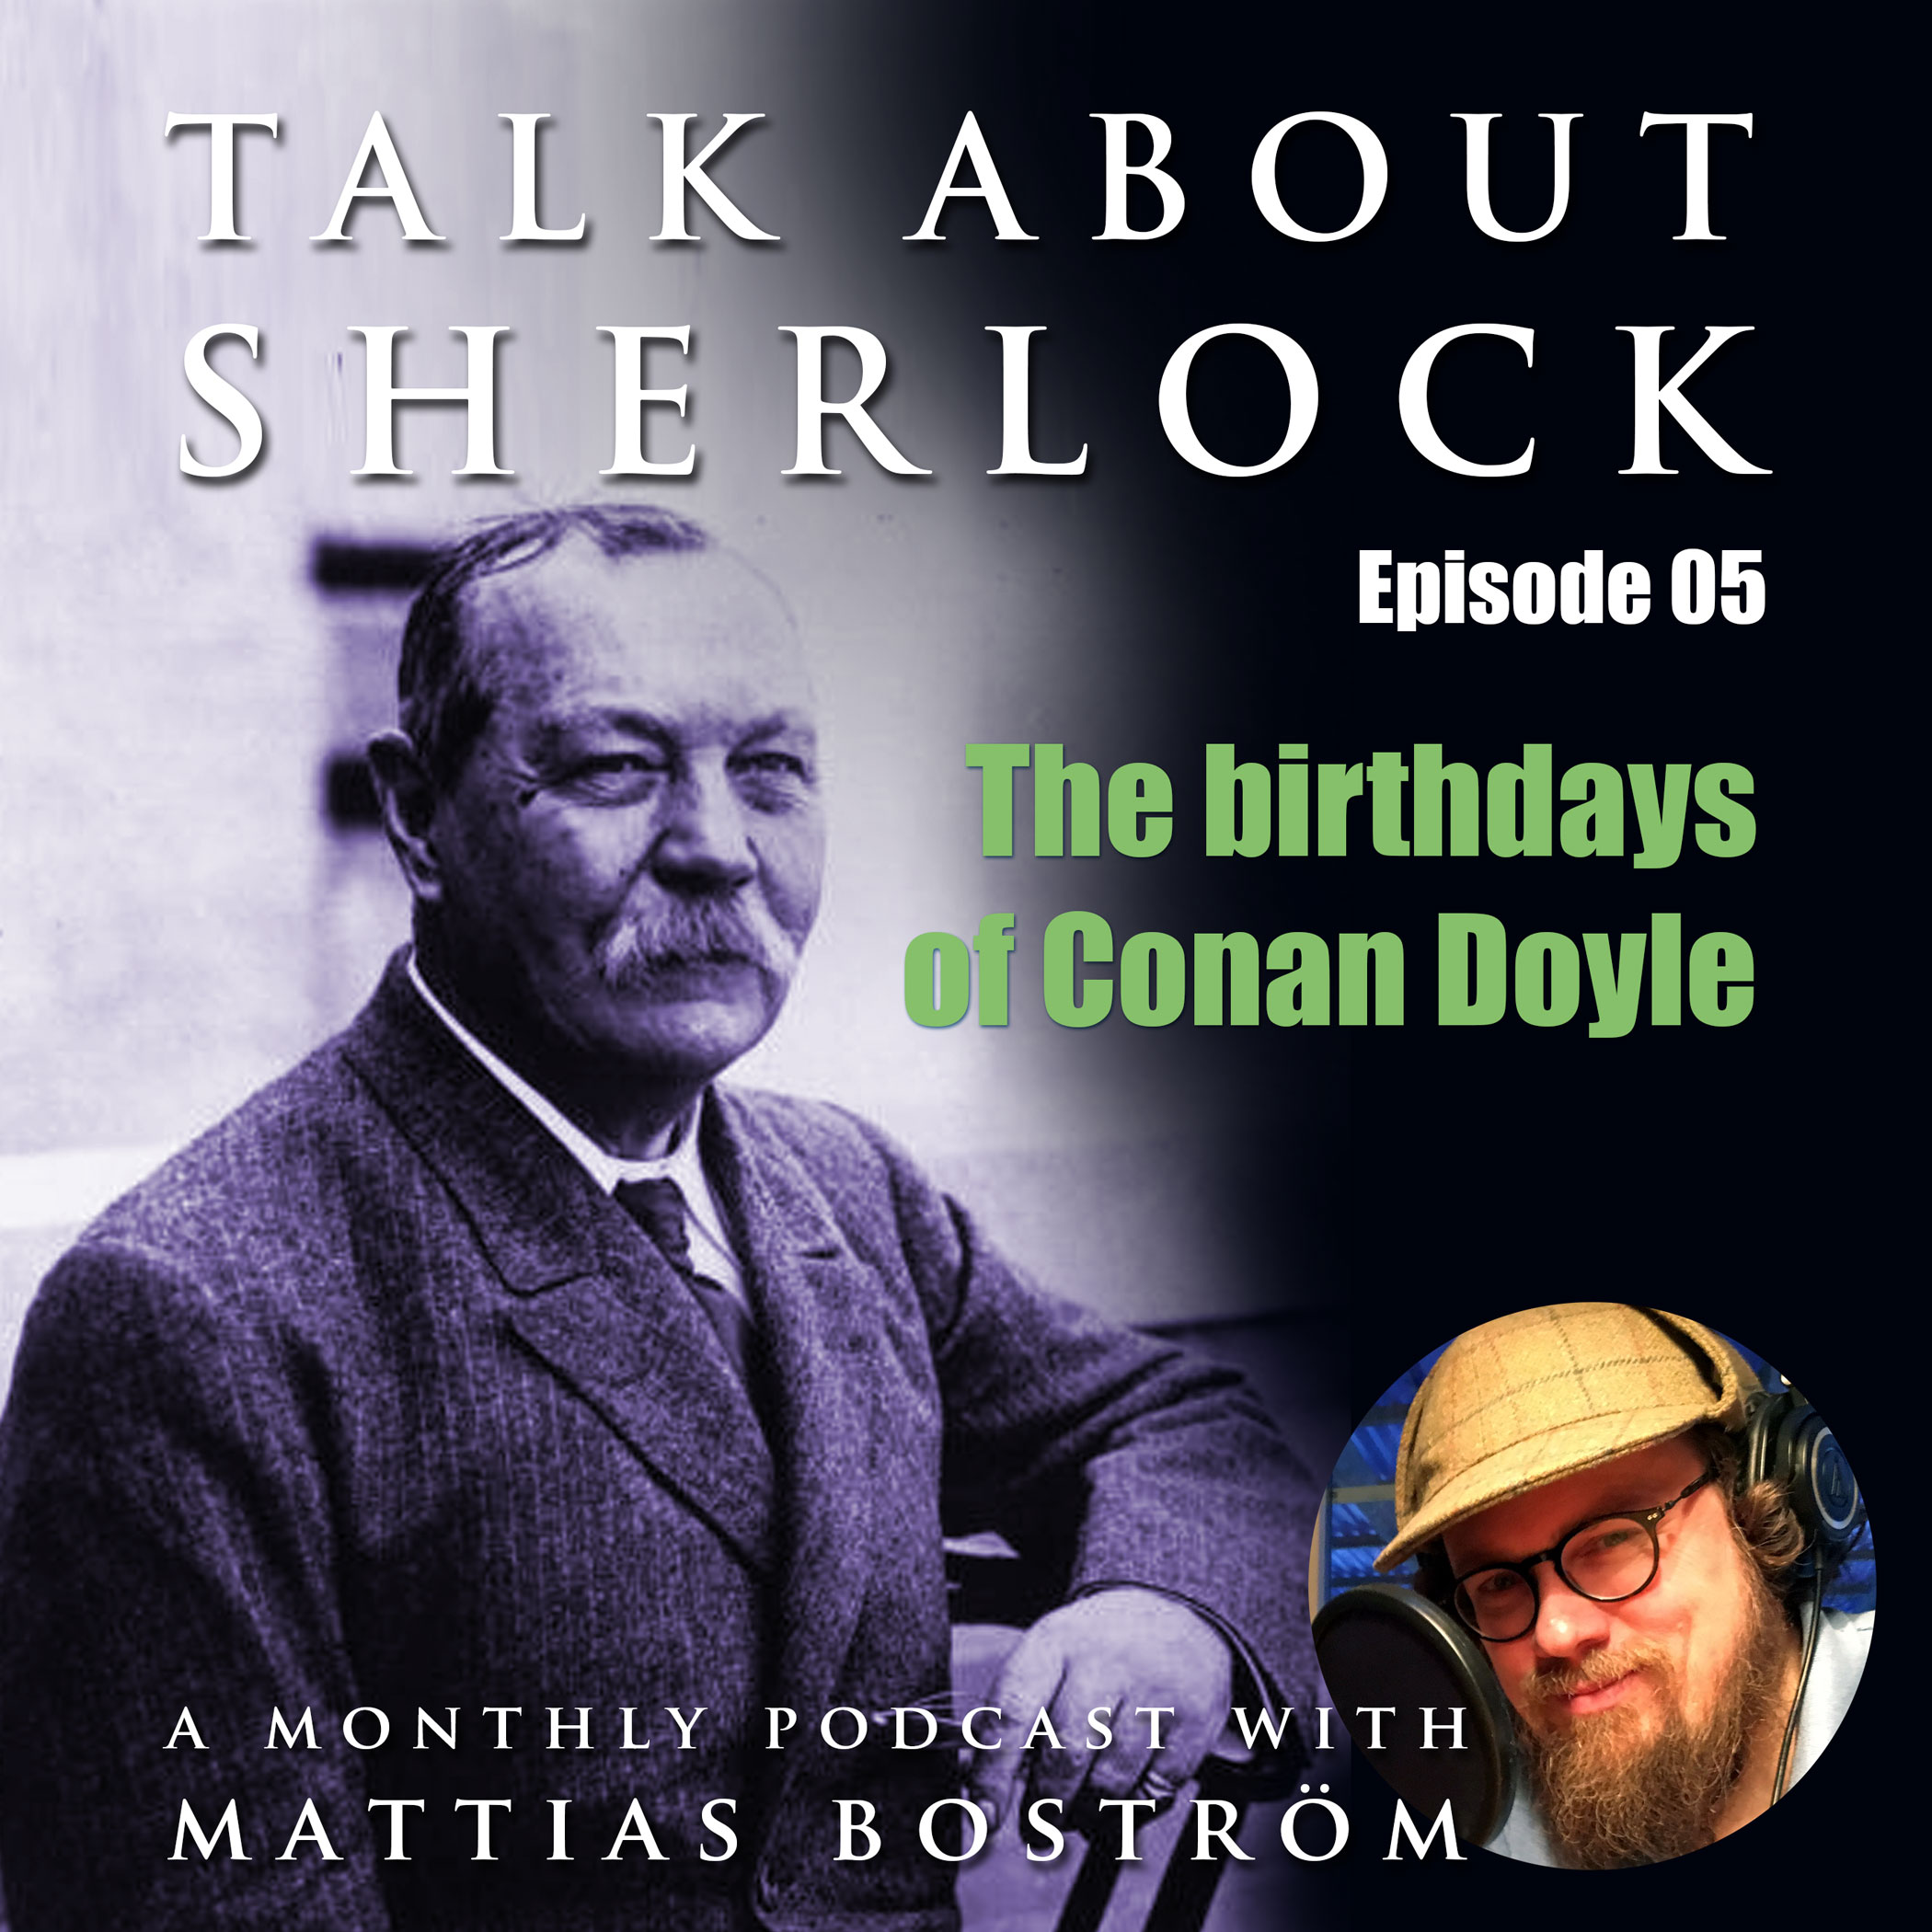 Episode 05: The Birthdays of Conan Doyle